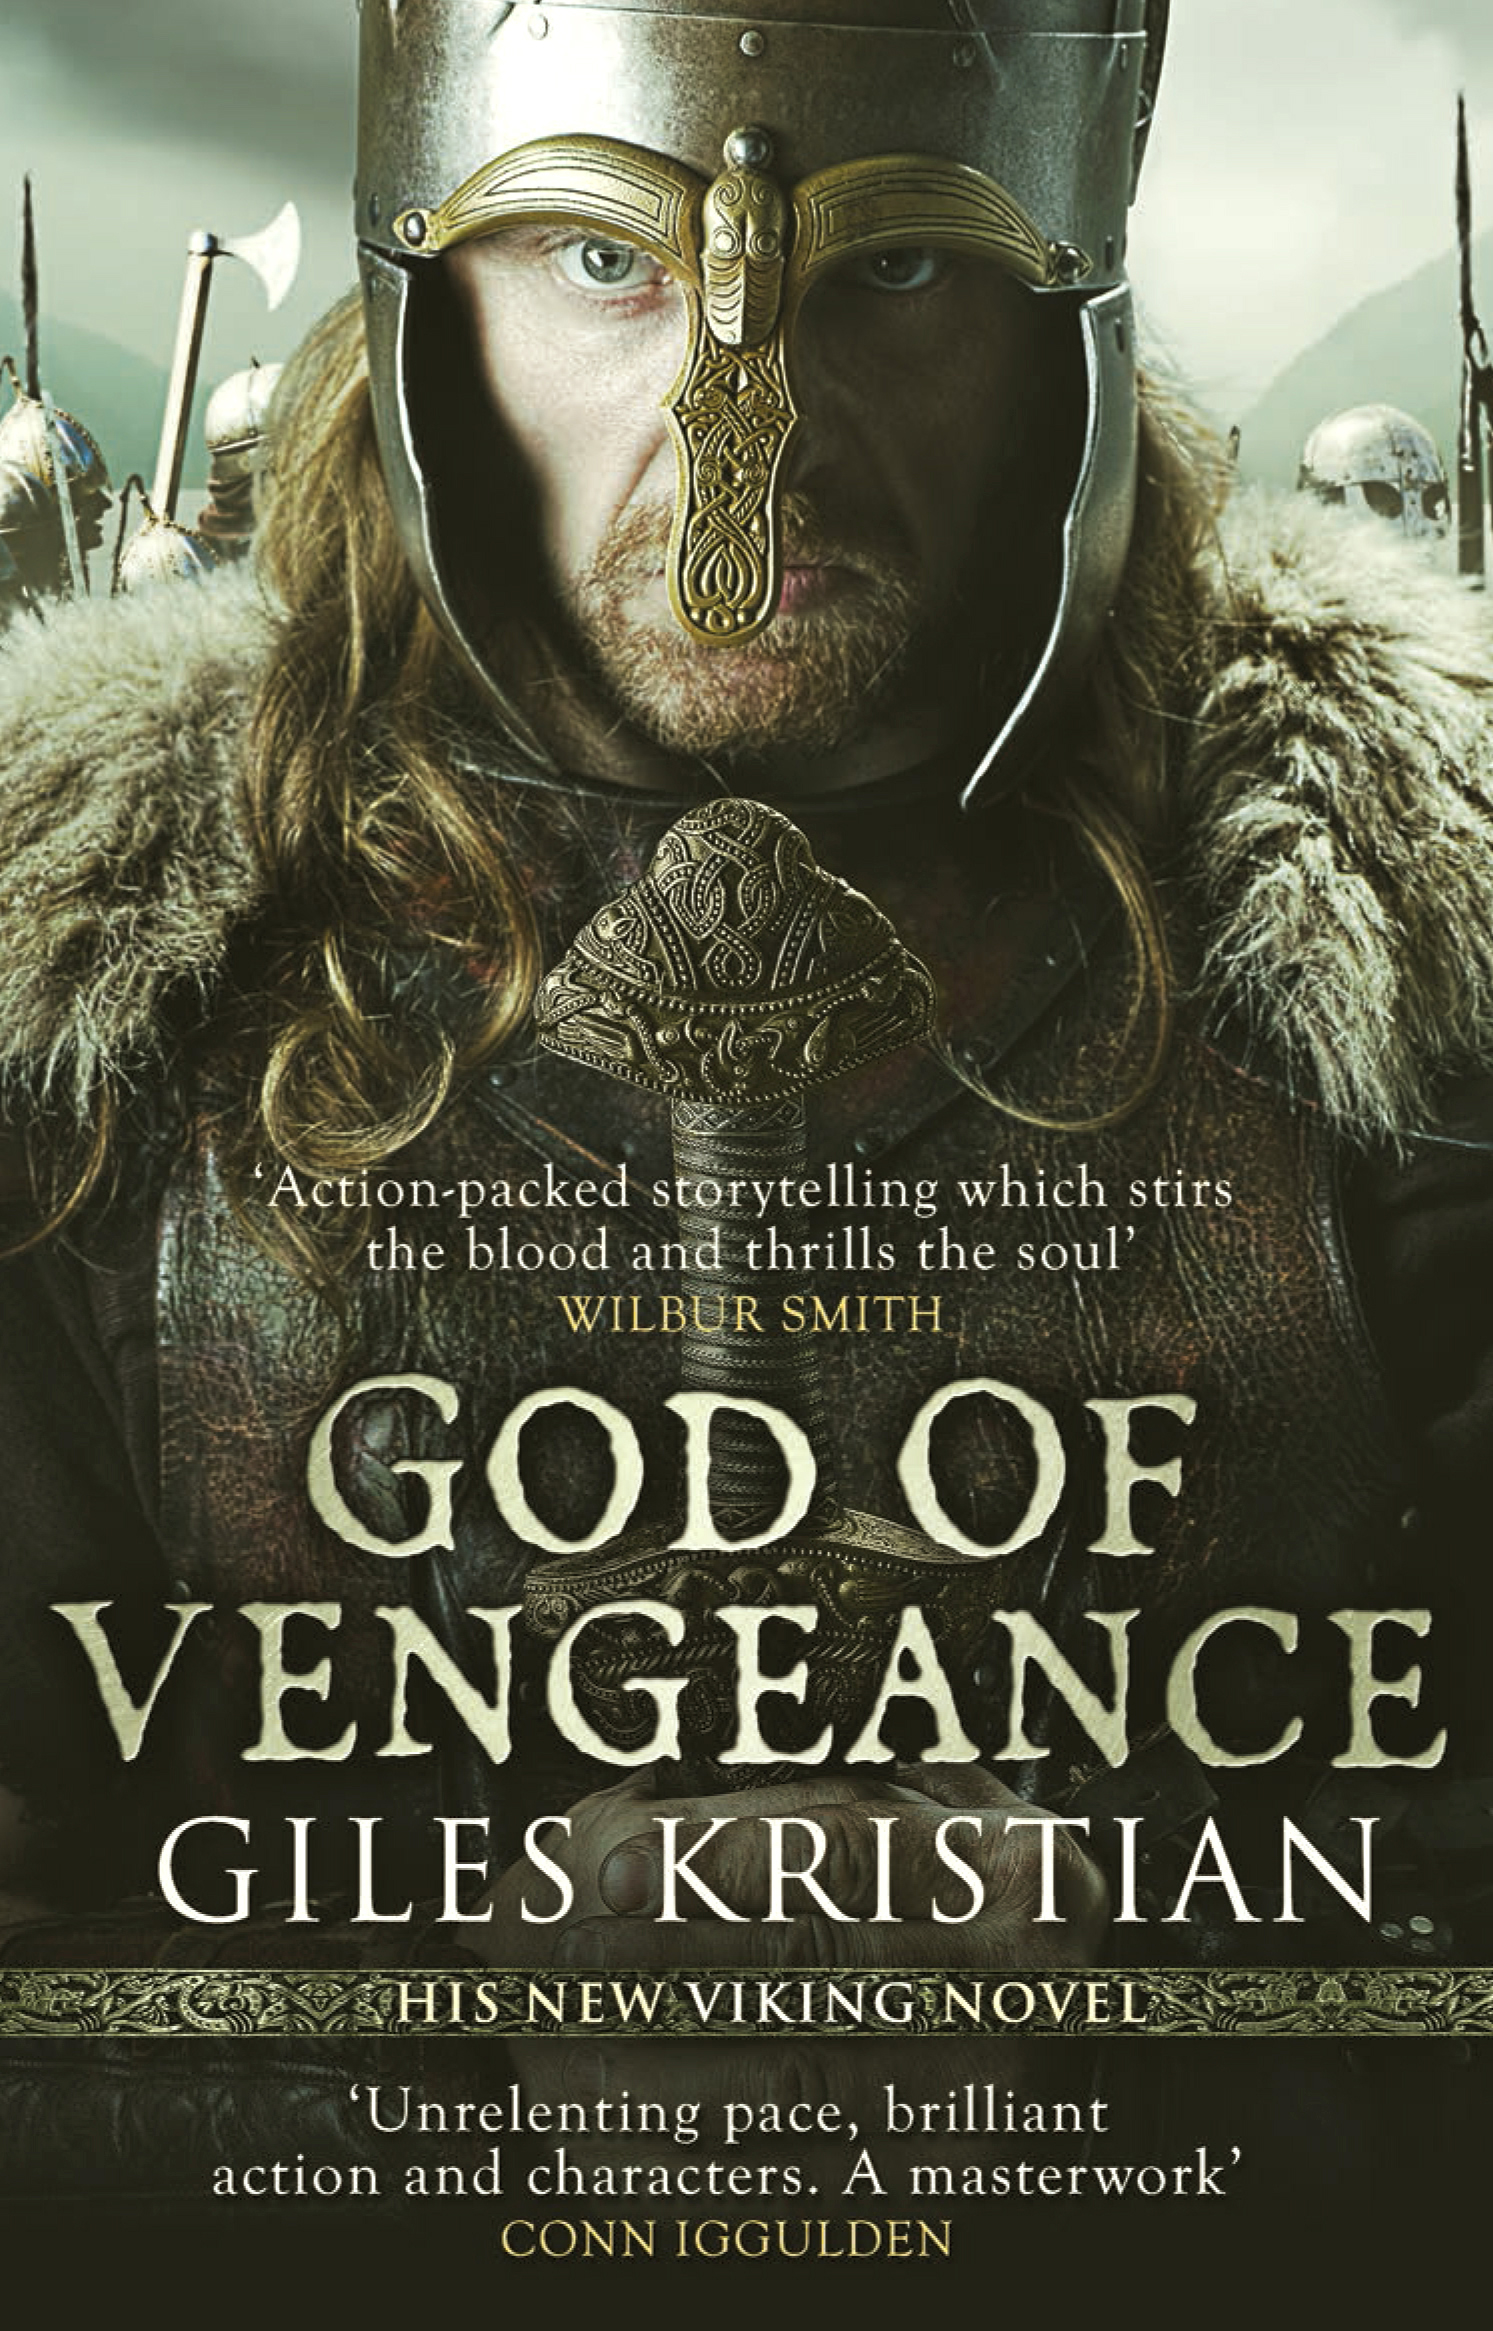 GOD OF VENGEANCE BY GILES KRISTIAN